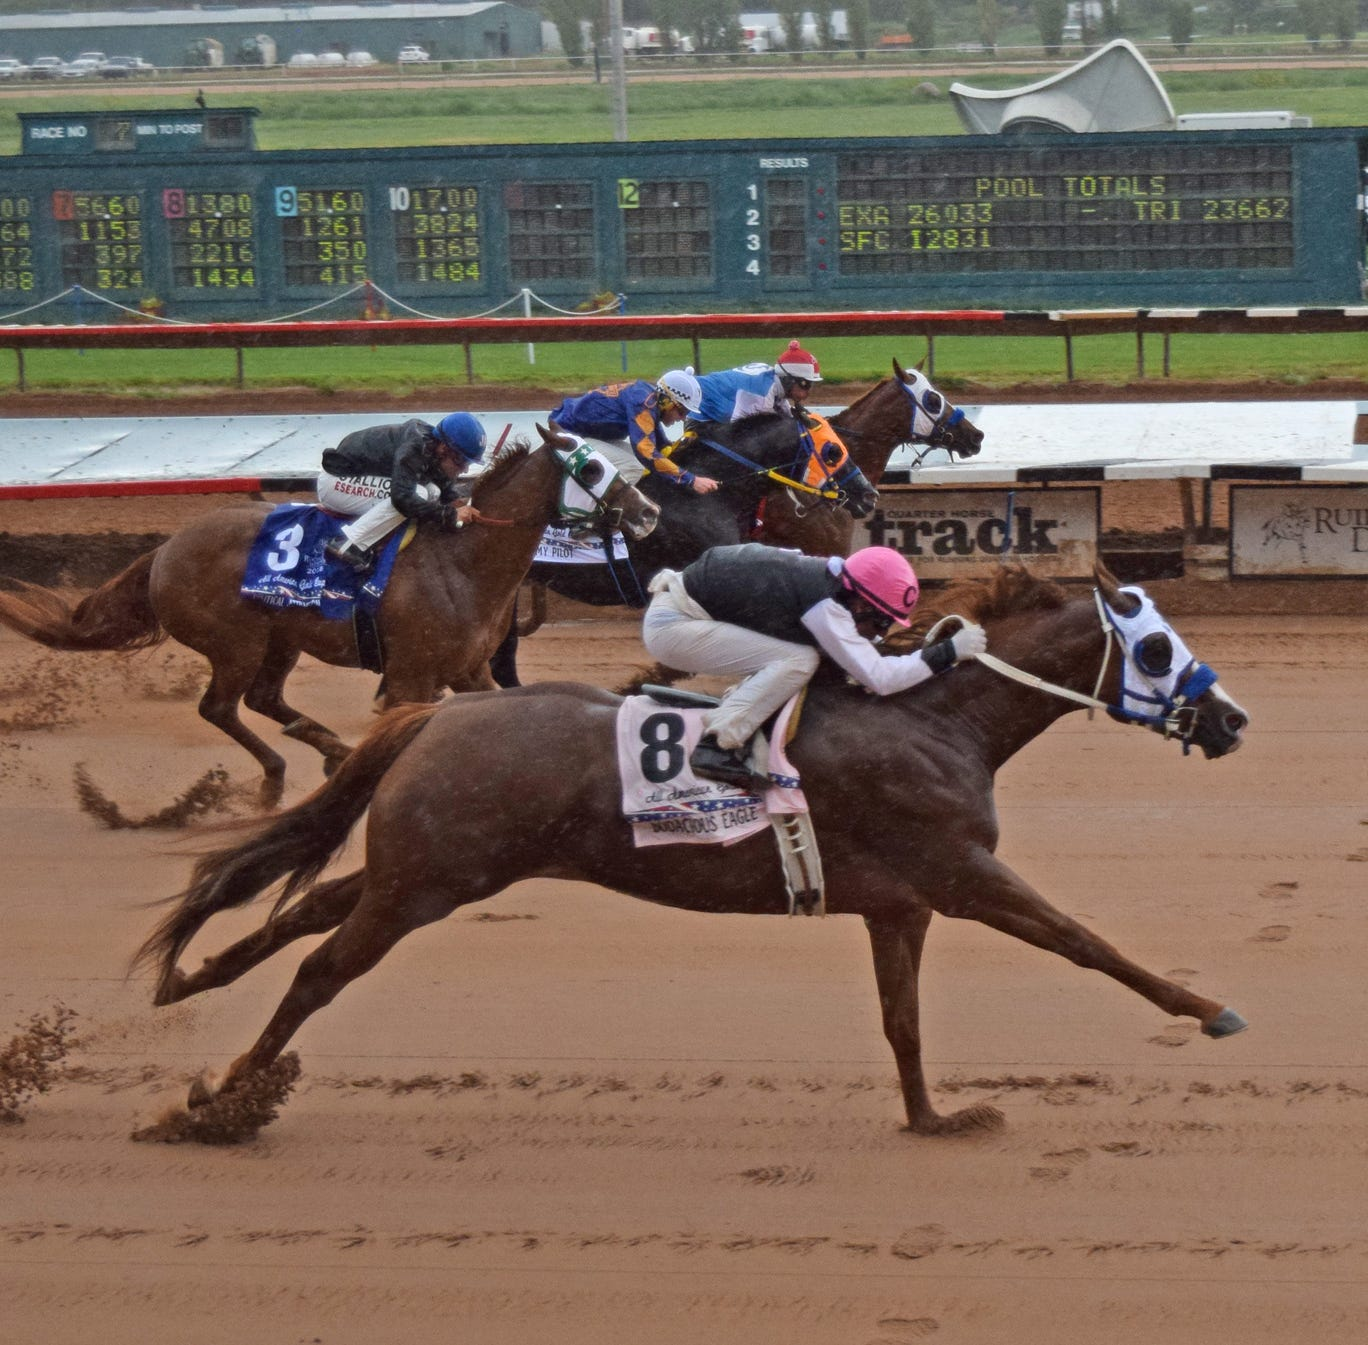 Ruidoso Downs race track hiring for the summer